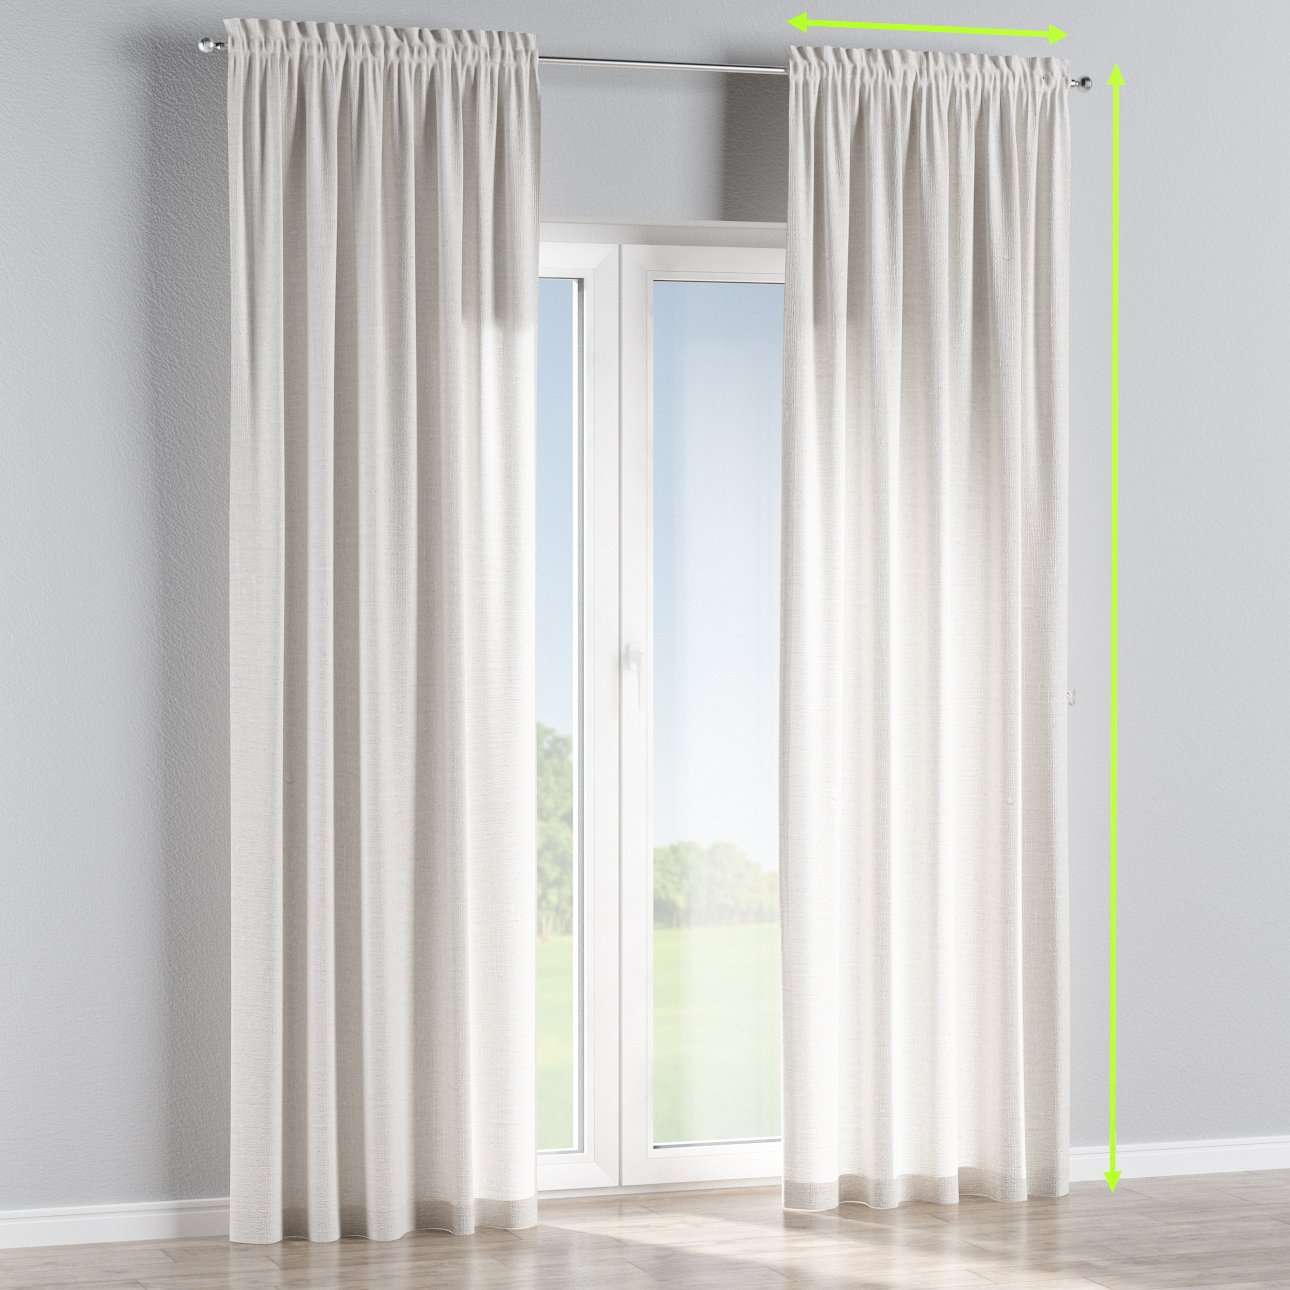 Slot and frill curtains in collection Linen, fabric: 392-04